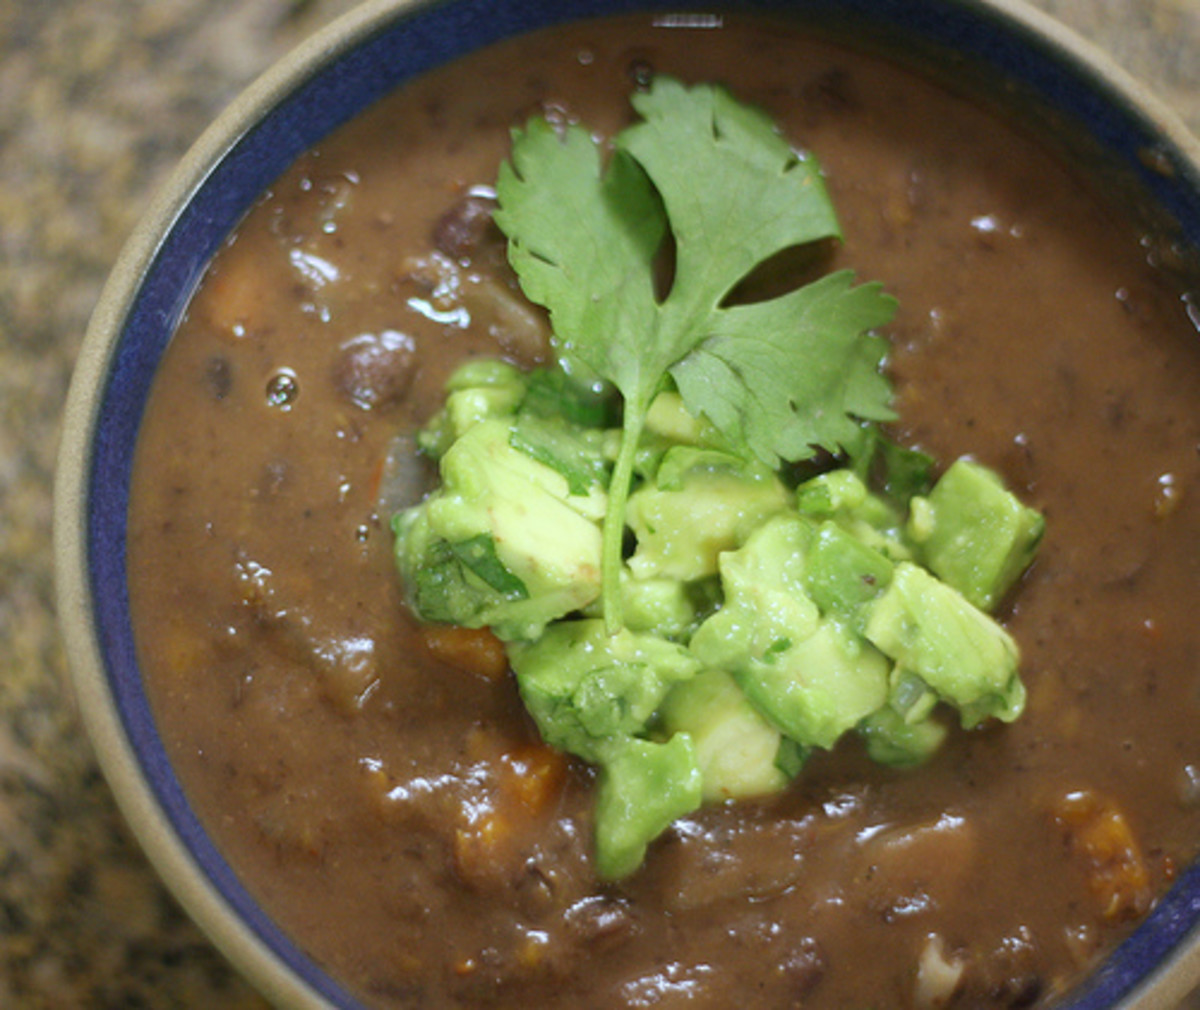 Add crushed tomatoes to make black bean soup. Serve with a guacamole garnish.